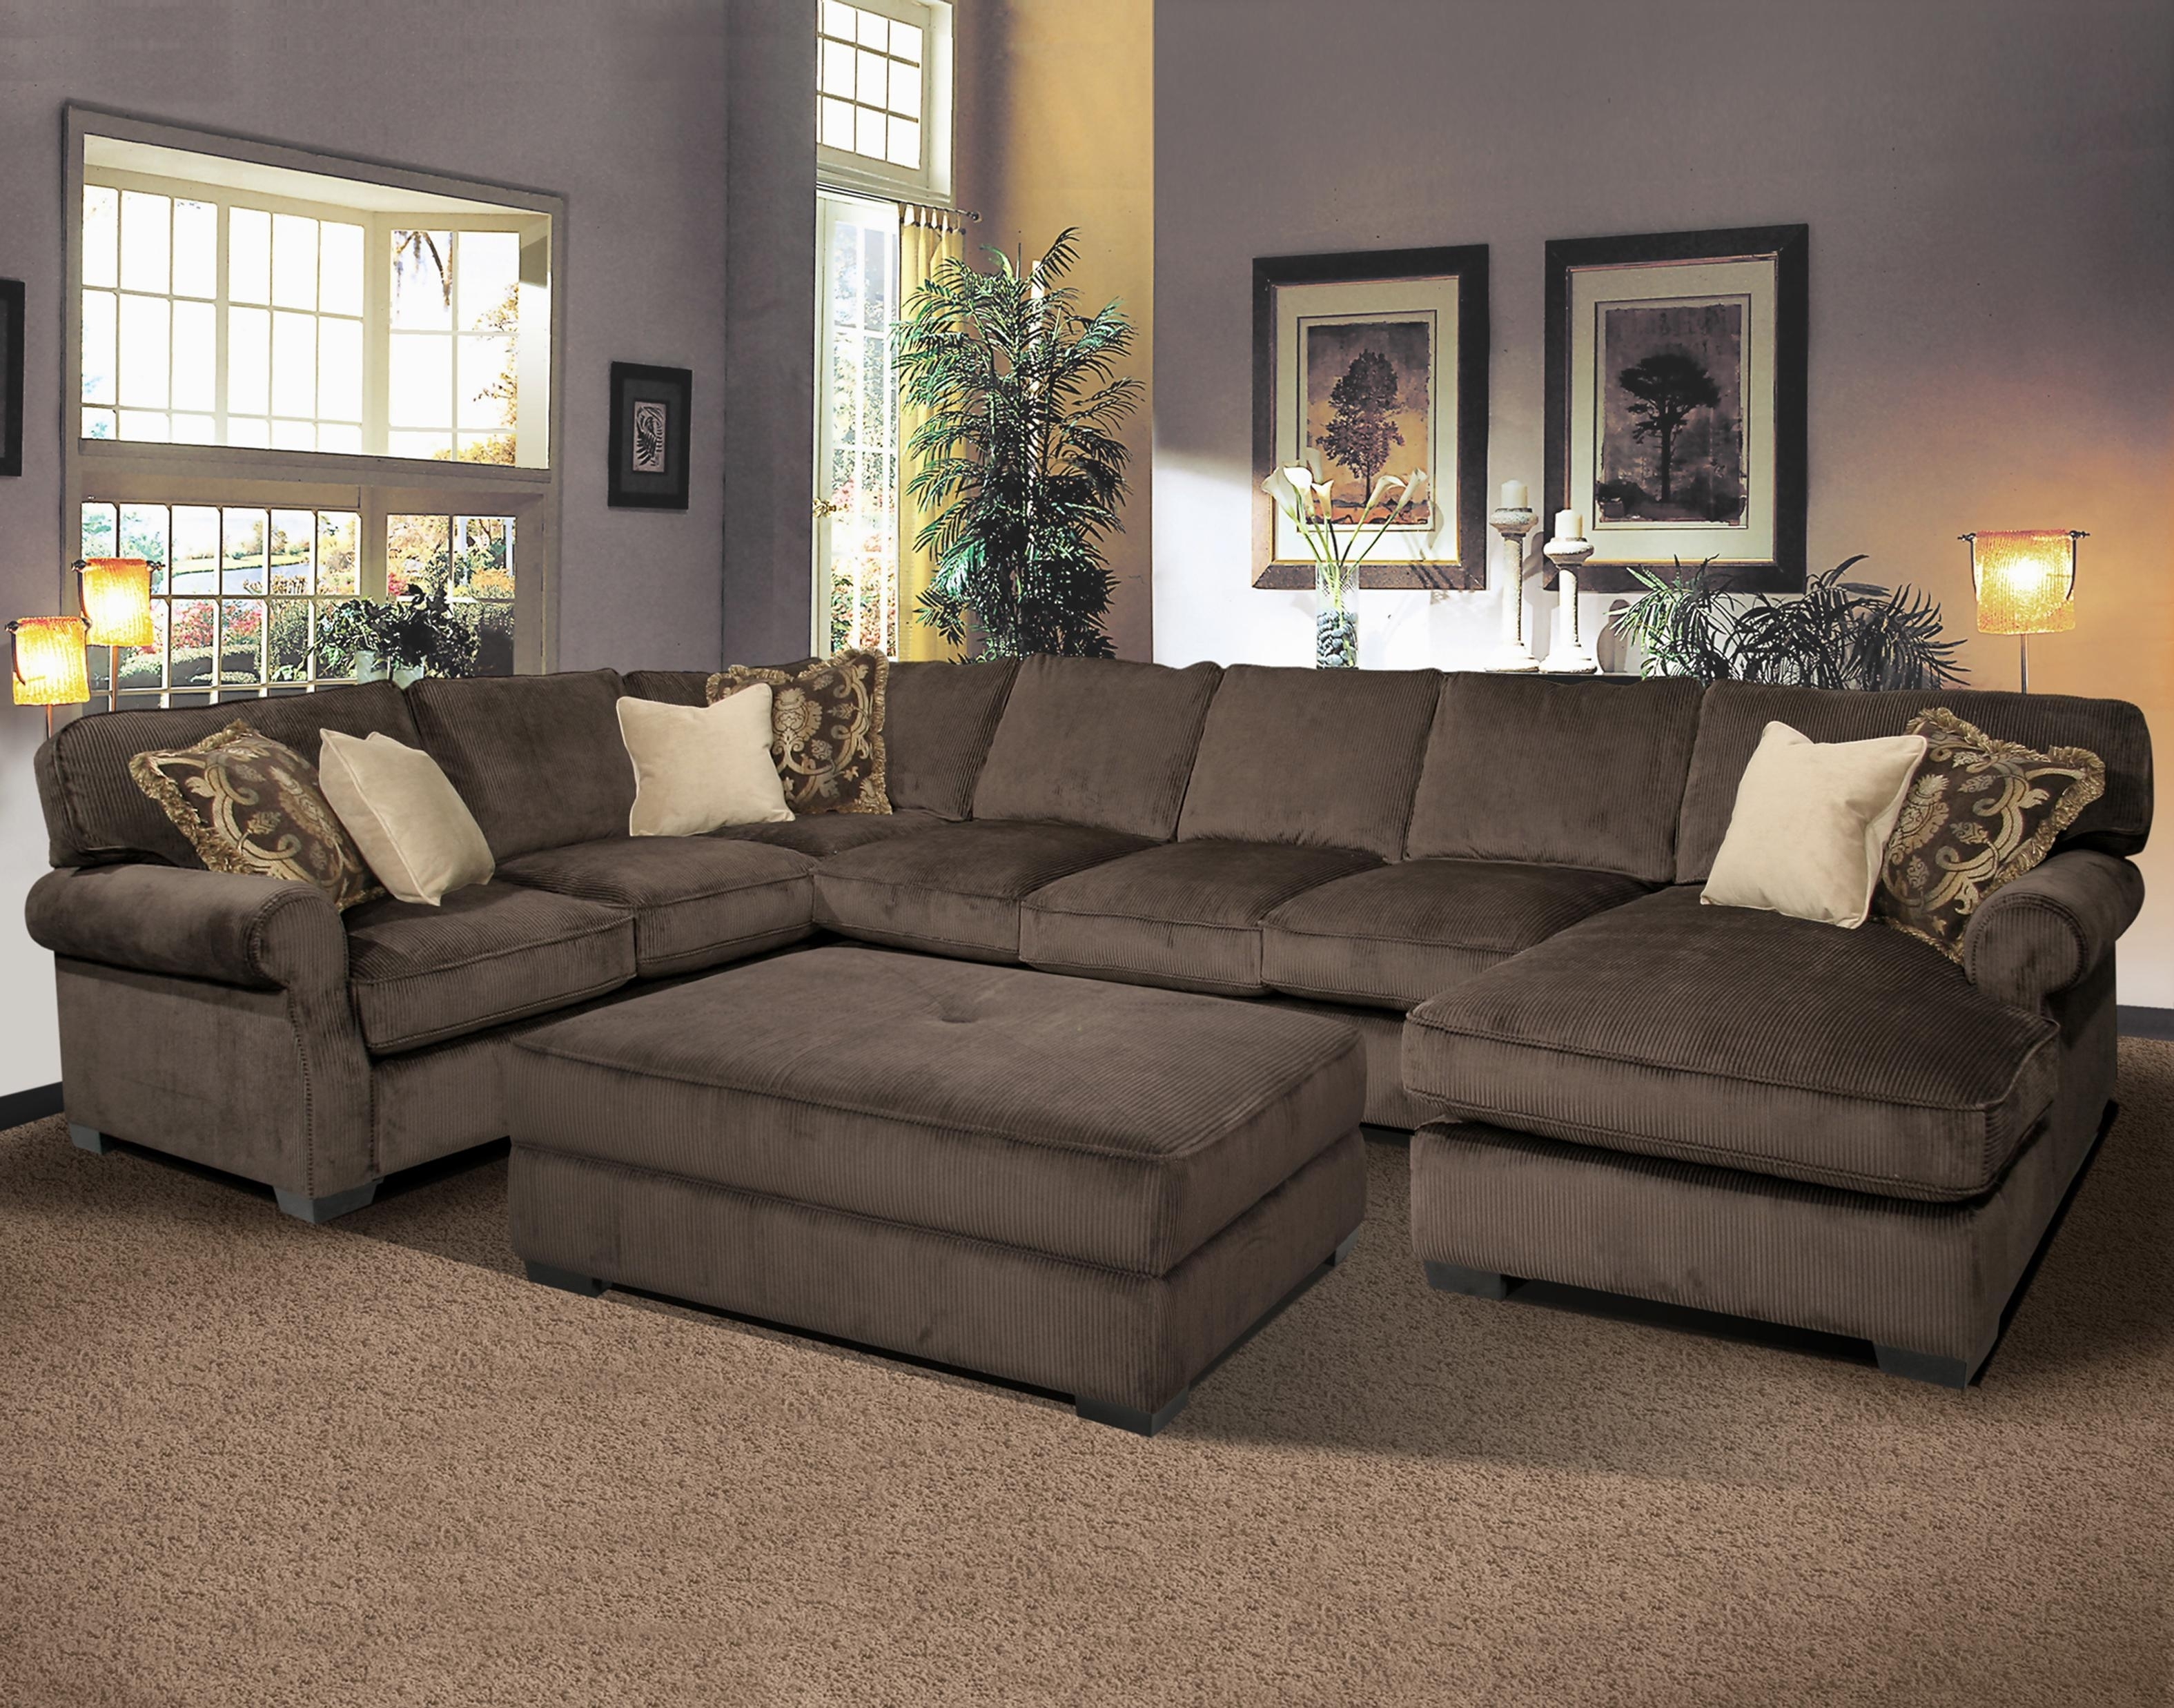 Most Comfortable Sectional Sofa You Ll Love In 2020 Visualhunt